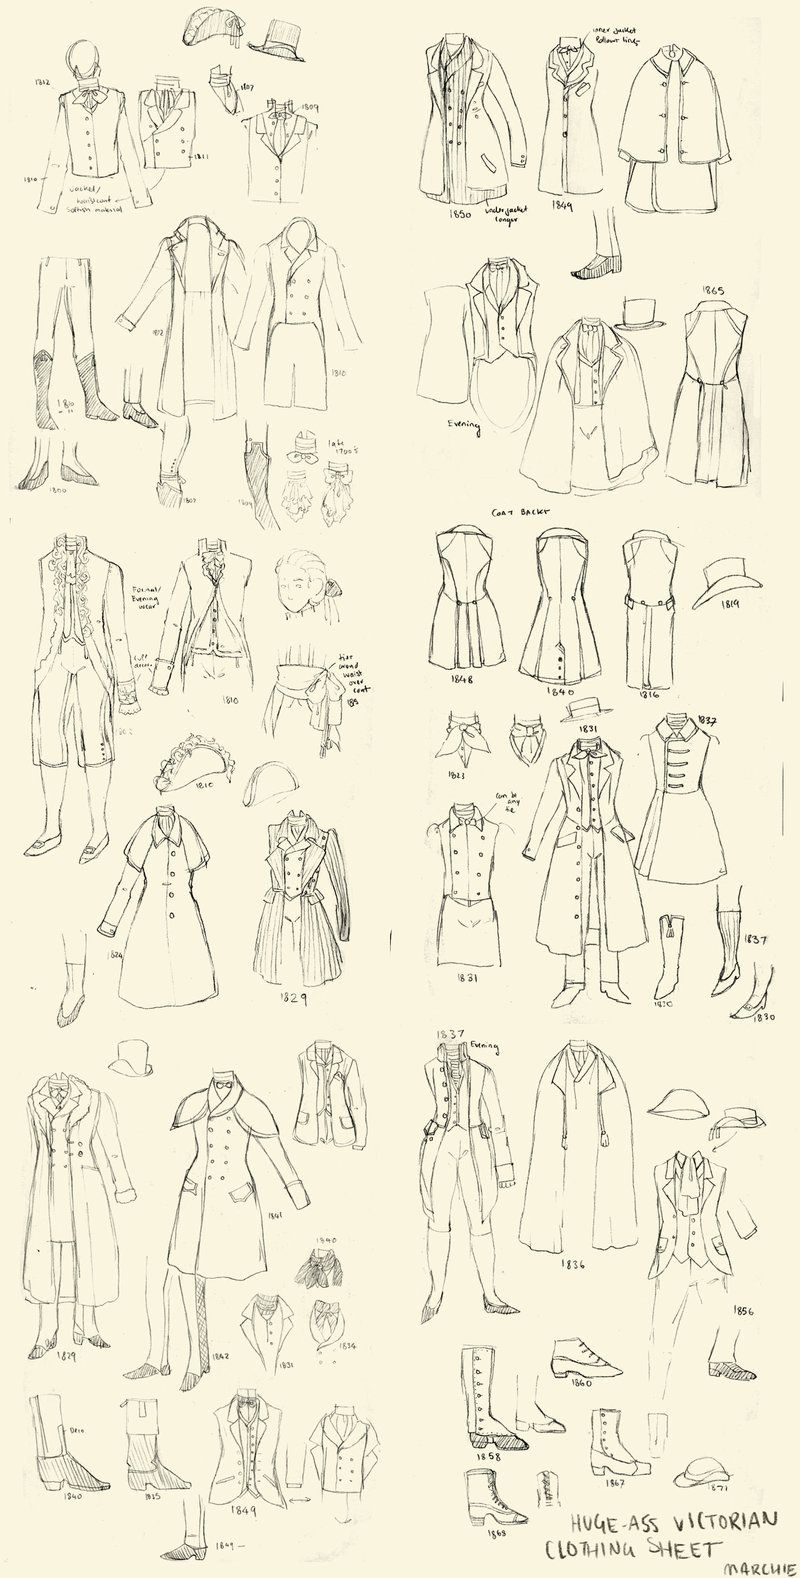 800x1578 Huge Victorian Clothing Ref By Marchie On Clothing